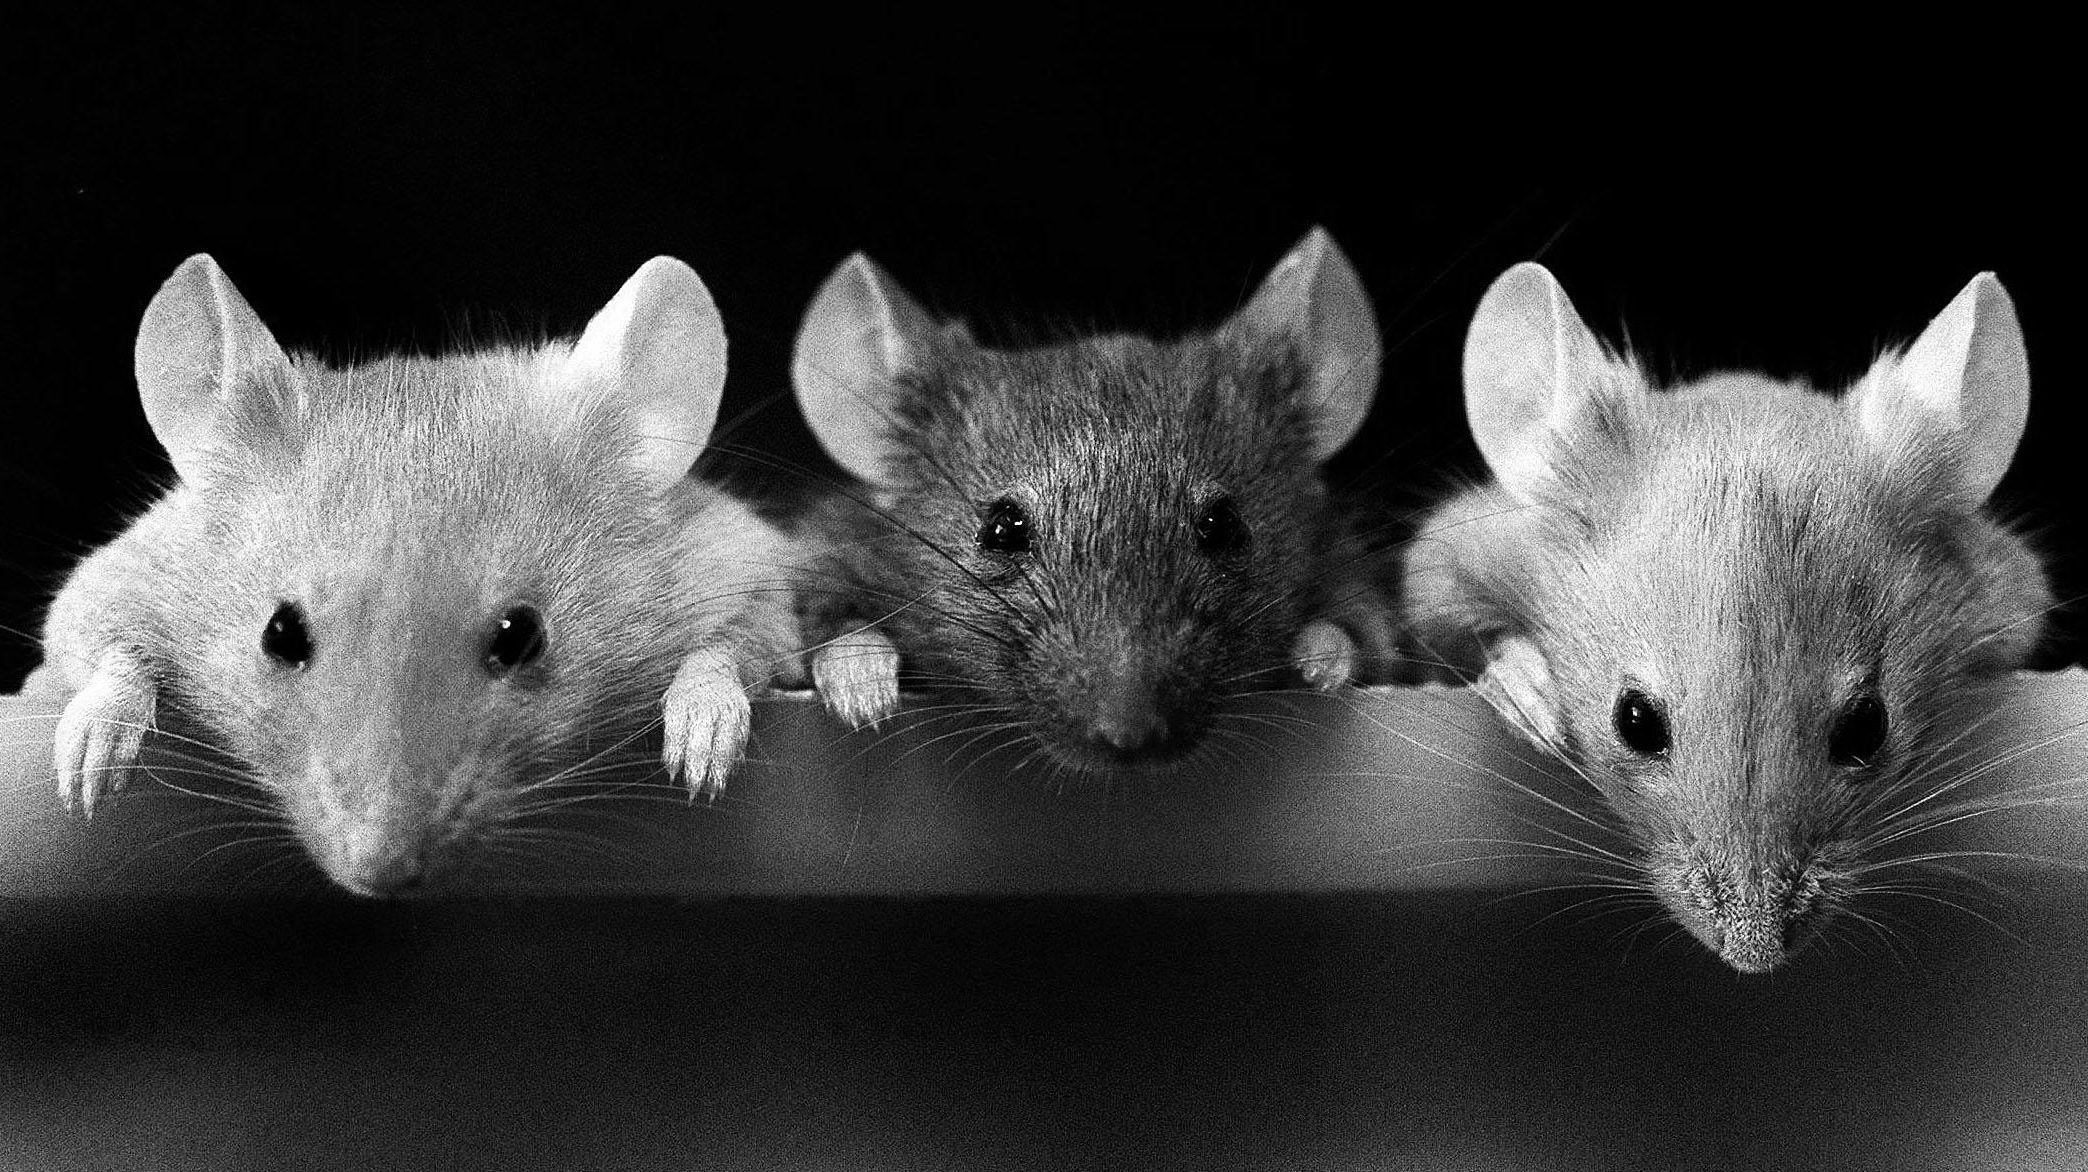 A light mouse, a black mouse, and another light mouse all looking over the edge of a ledge.